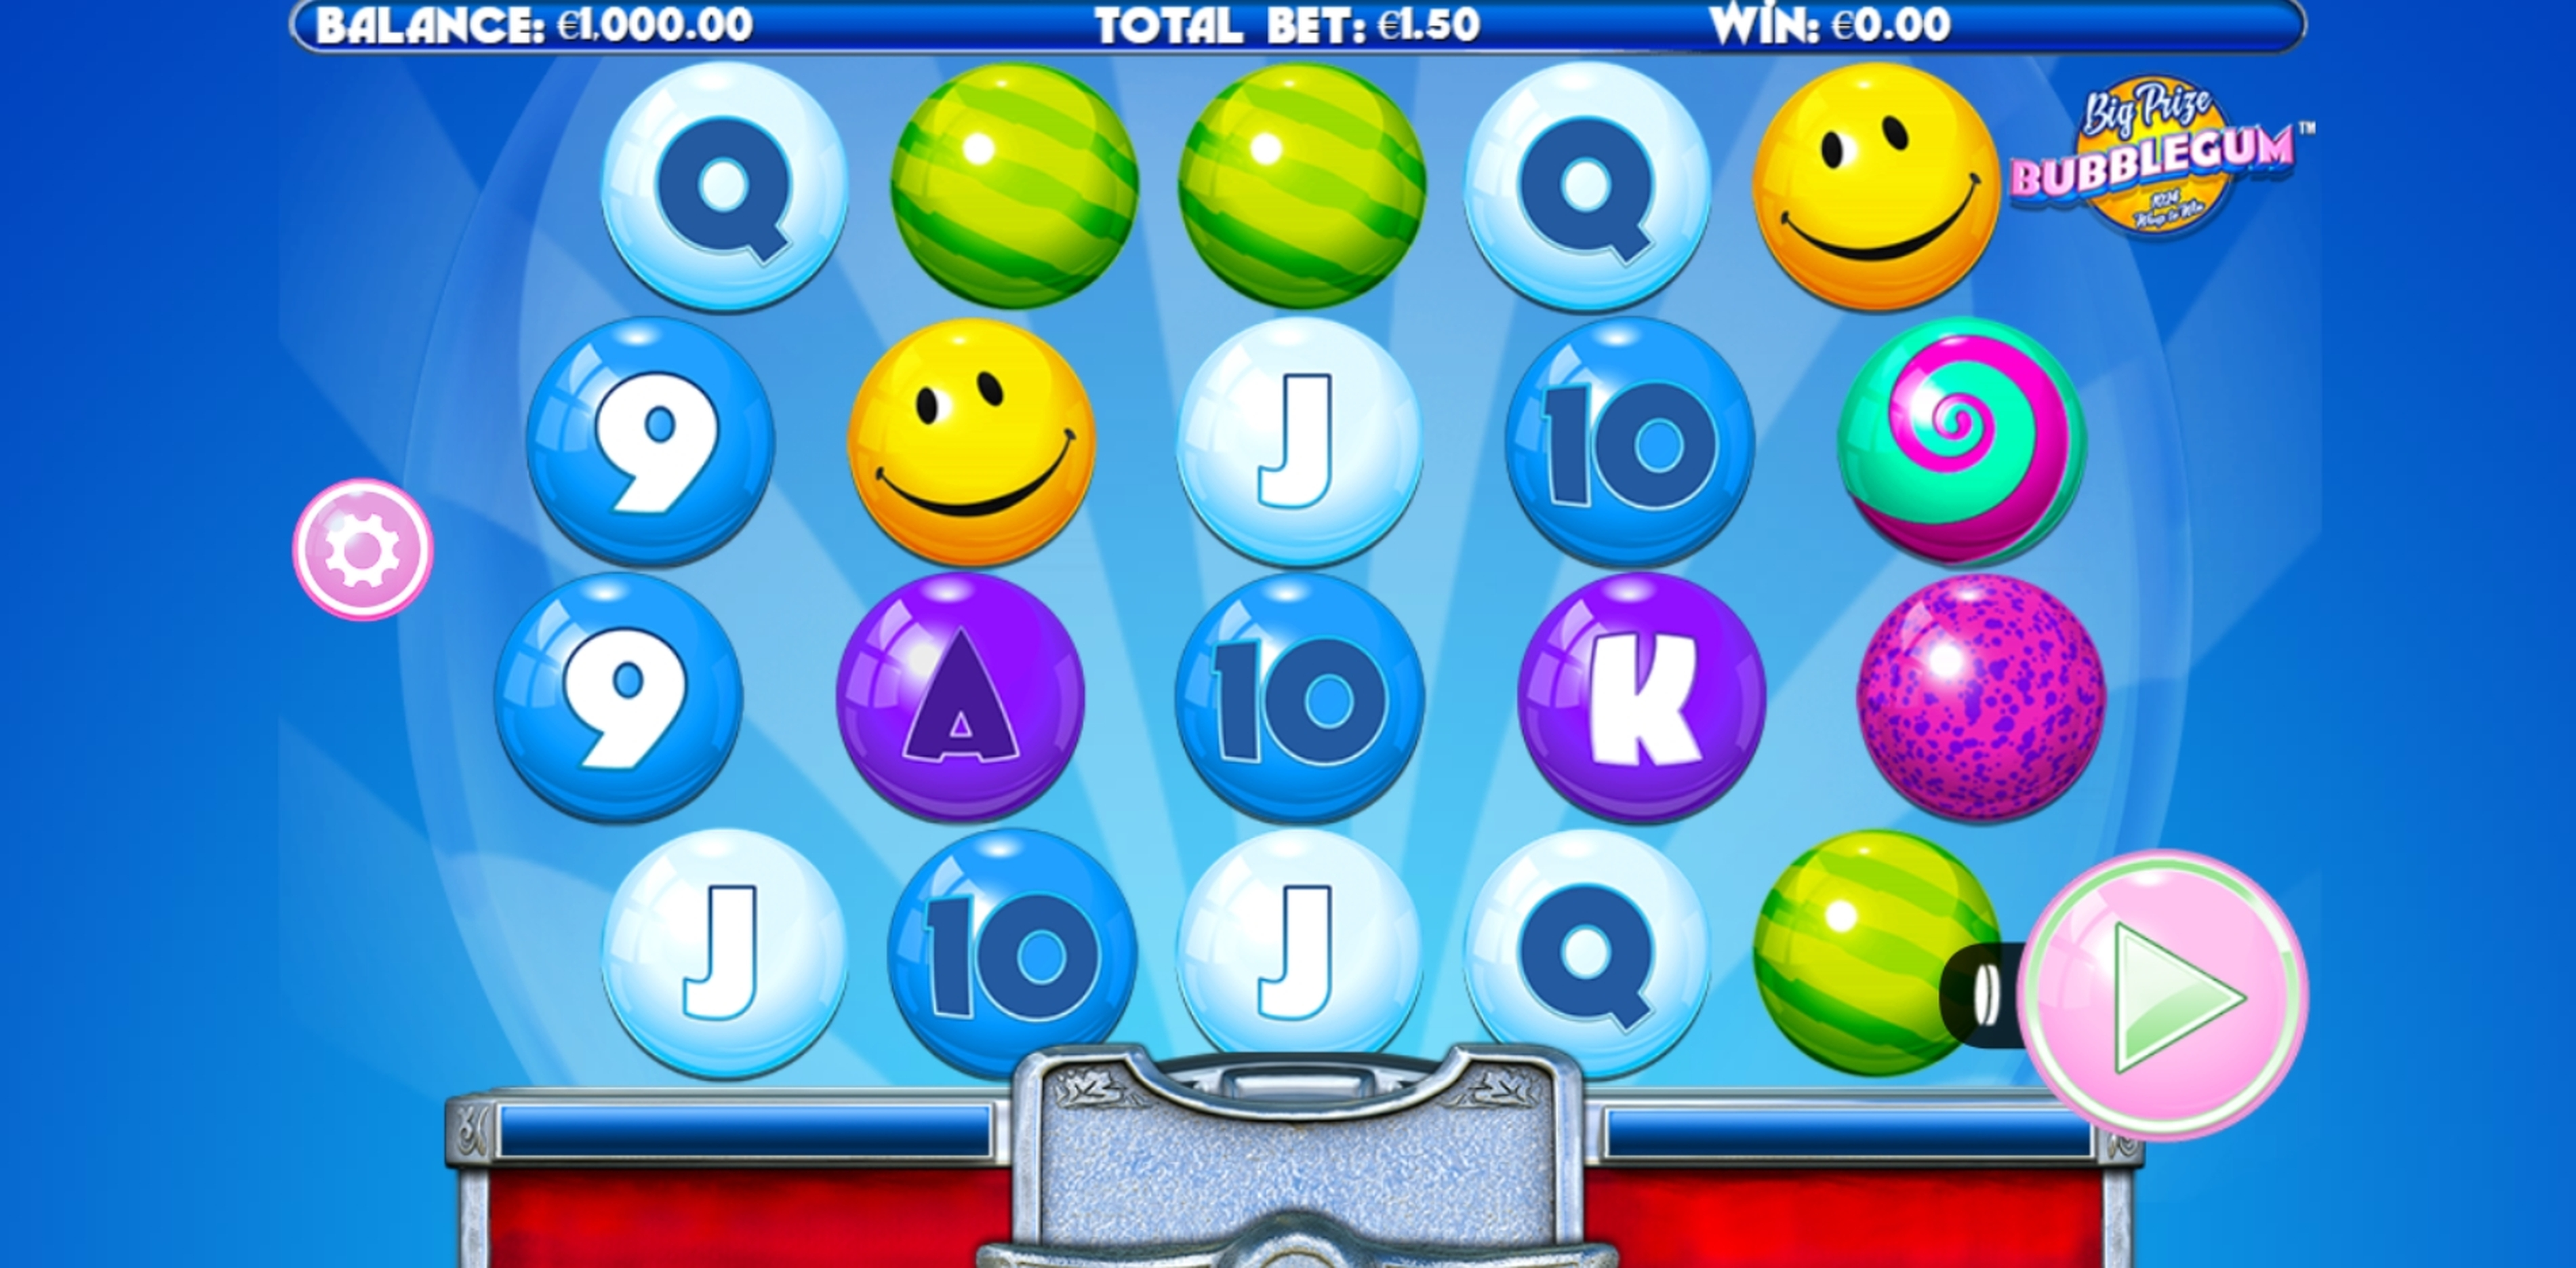 Reels in Big Prize Bubblegum Slot Game by Incredible Technologies